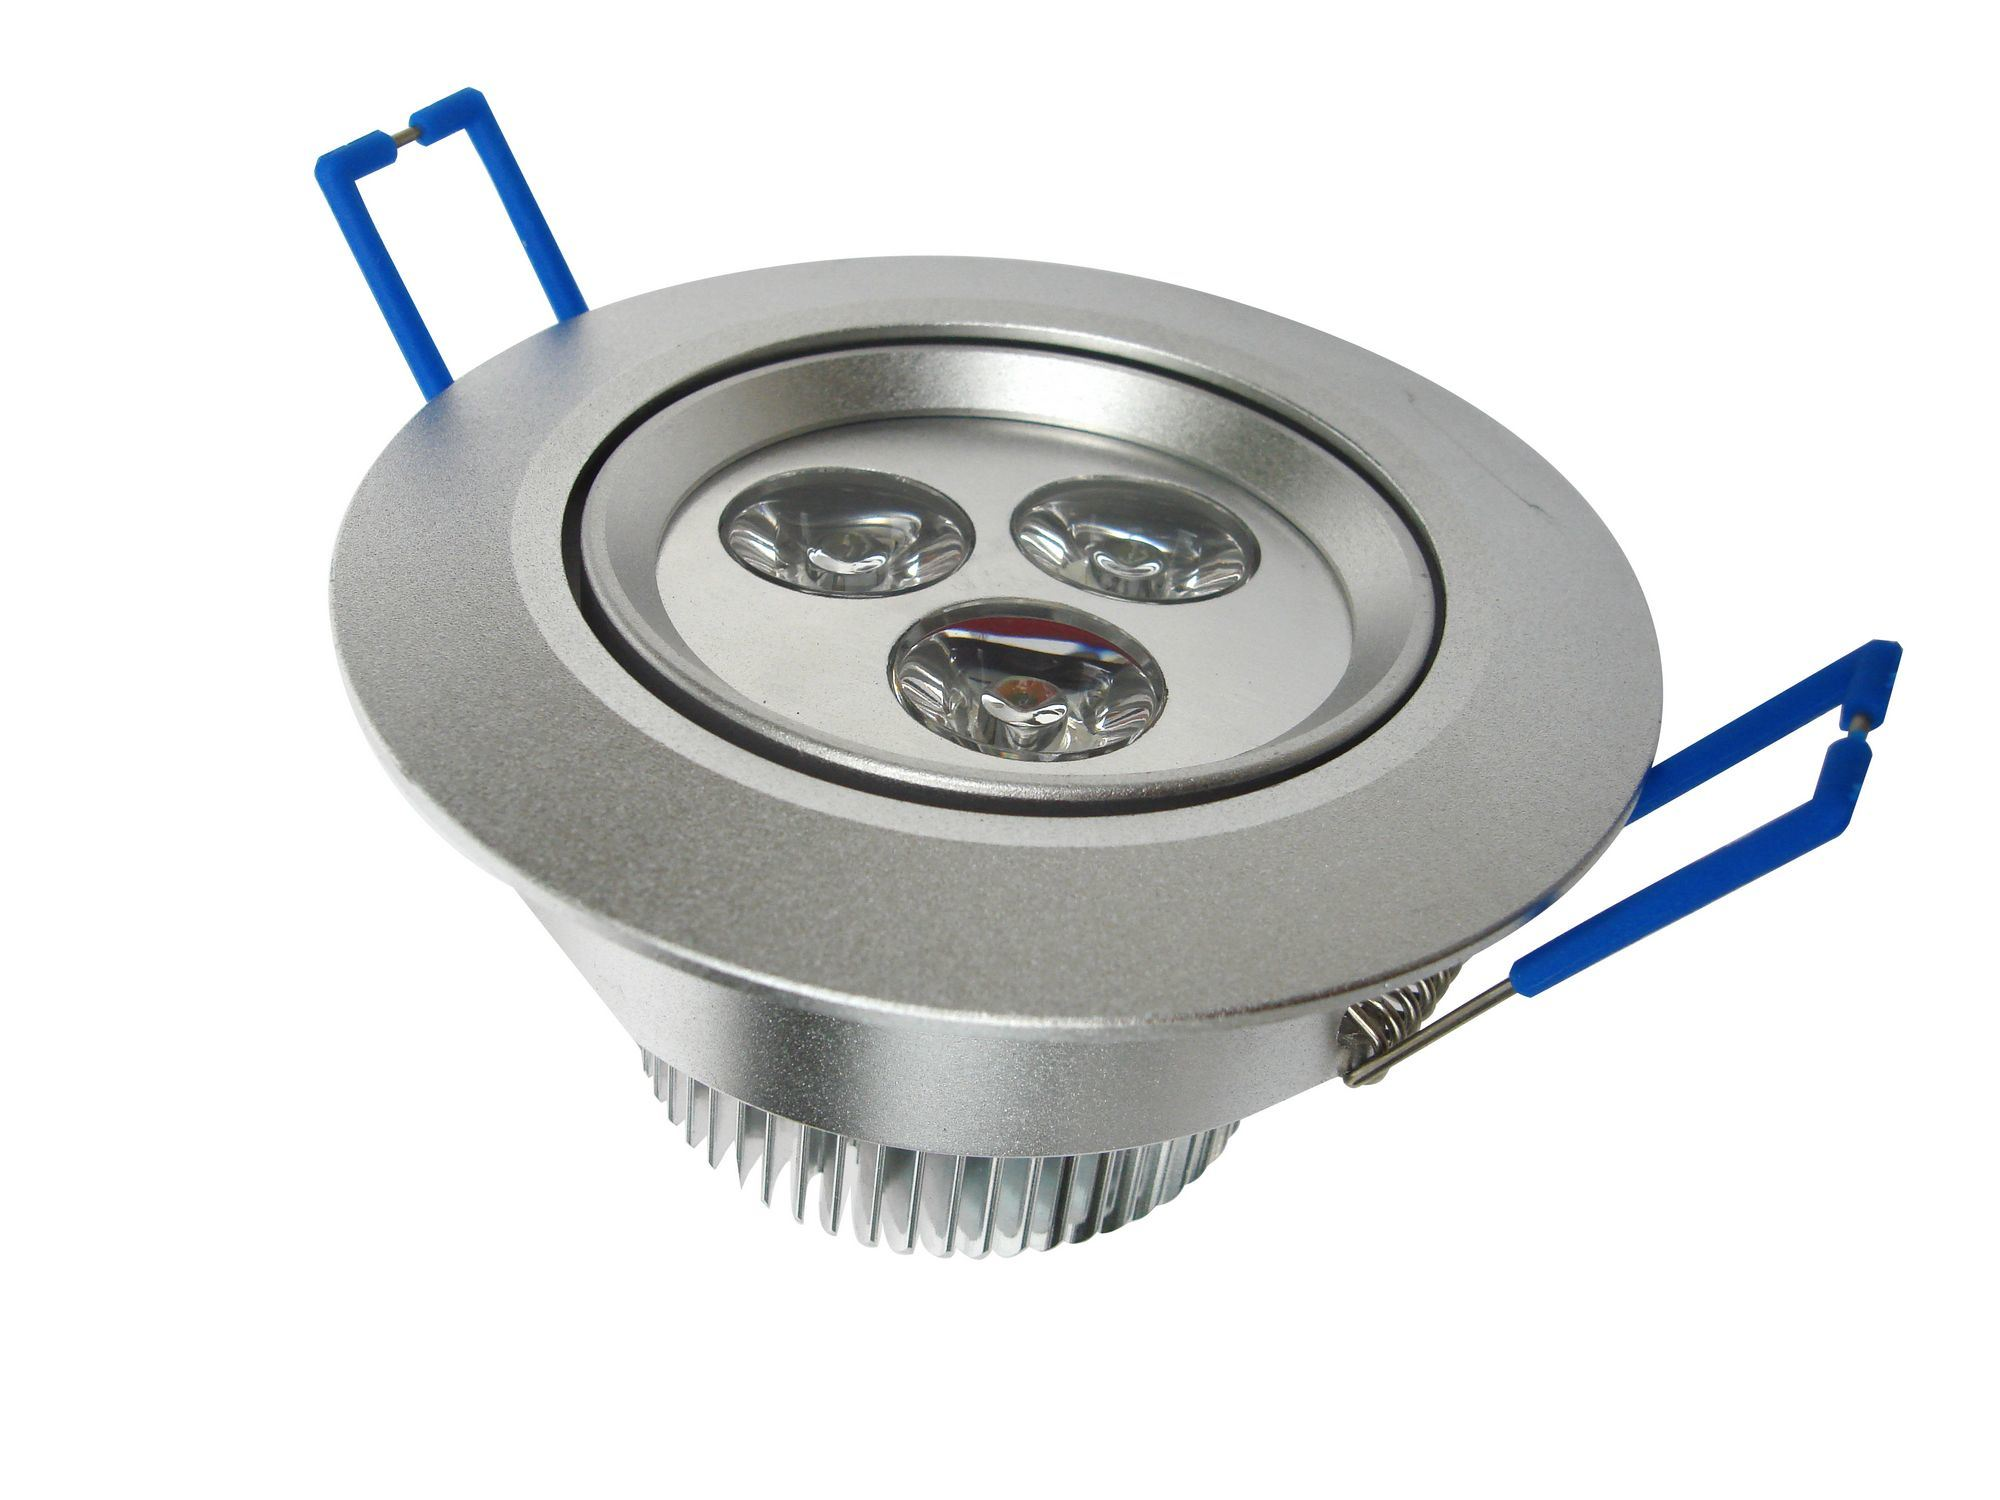 Led Ceiling Lights Made In China : China w led down light ceiling